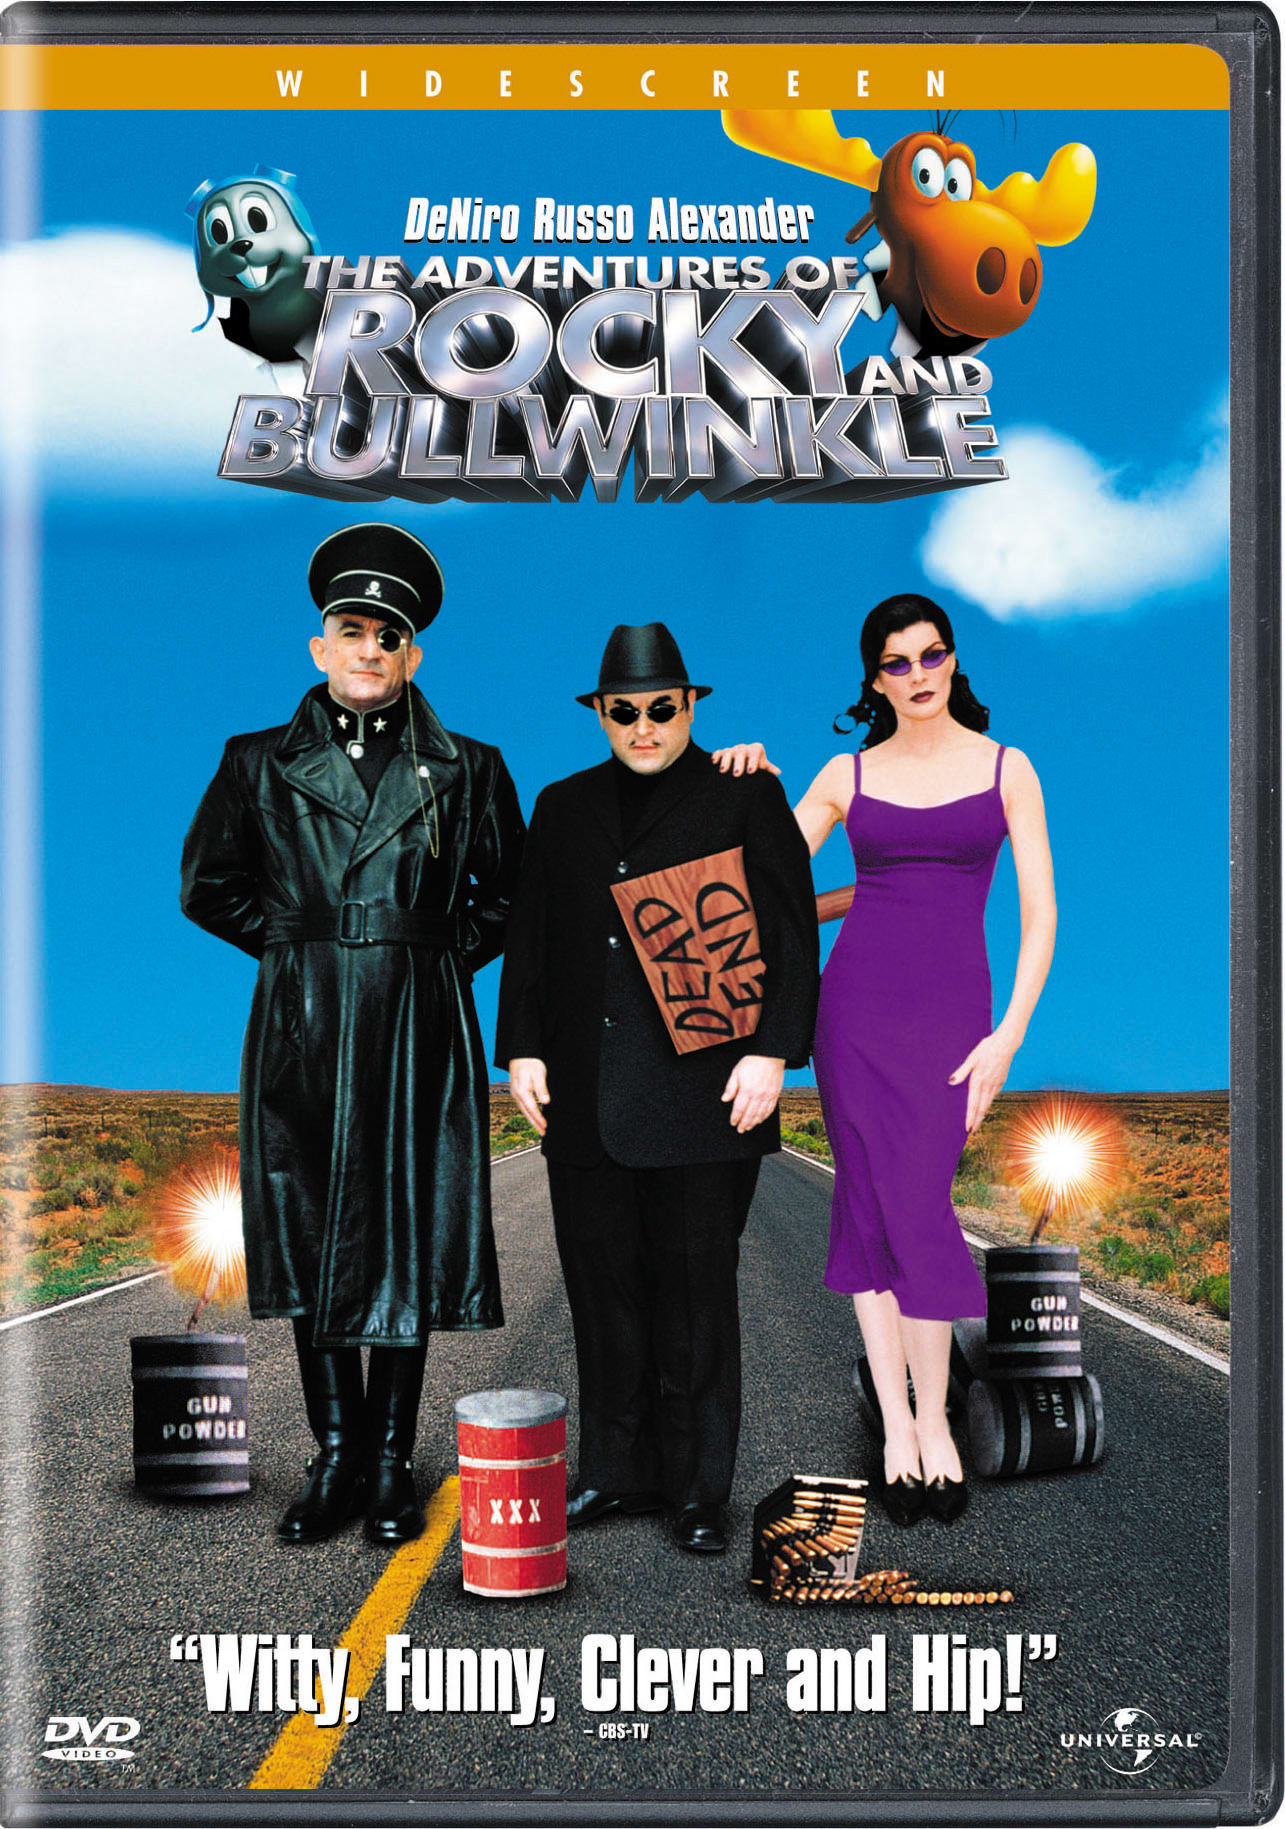 The Adventures of Rocky and Bullwinkle (2001) (Widescreen) [DVD]